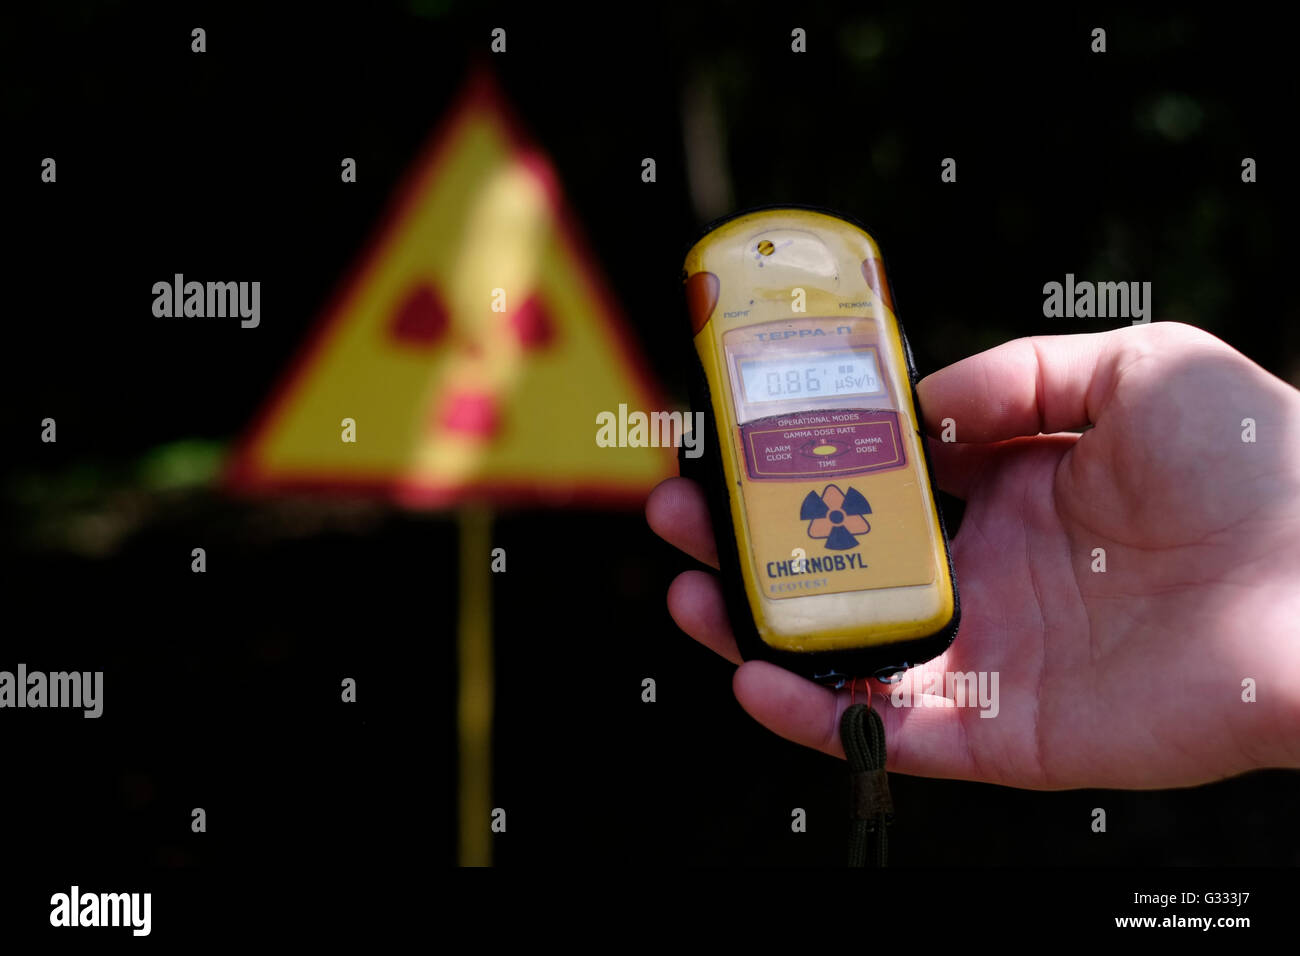 A person measures radioactivity with a geiger counter inside the Chernobyl Exclusion Zone in Ukraine on 04 June - Stock Image